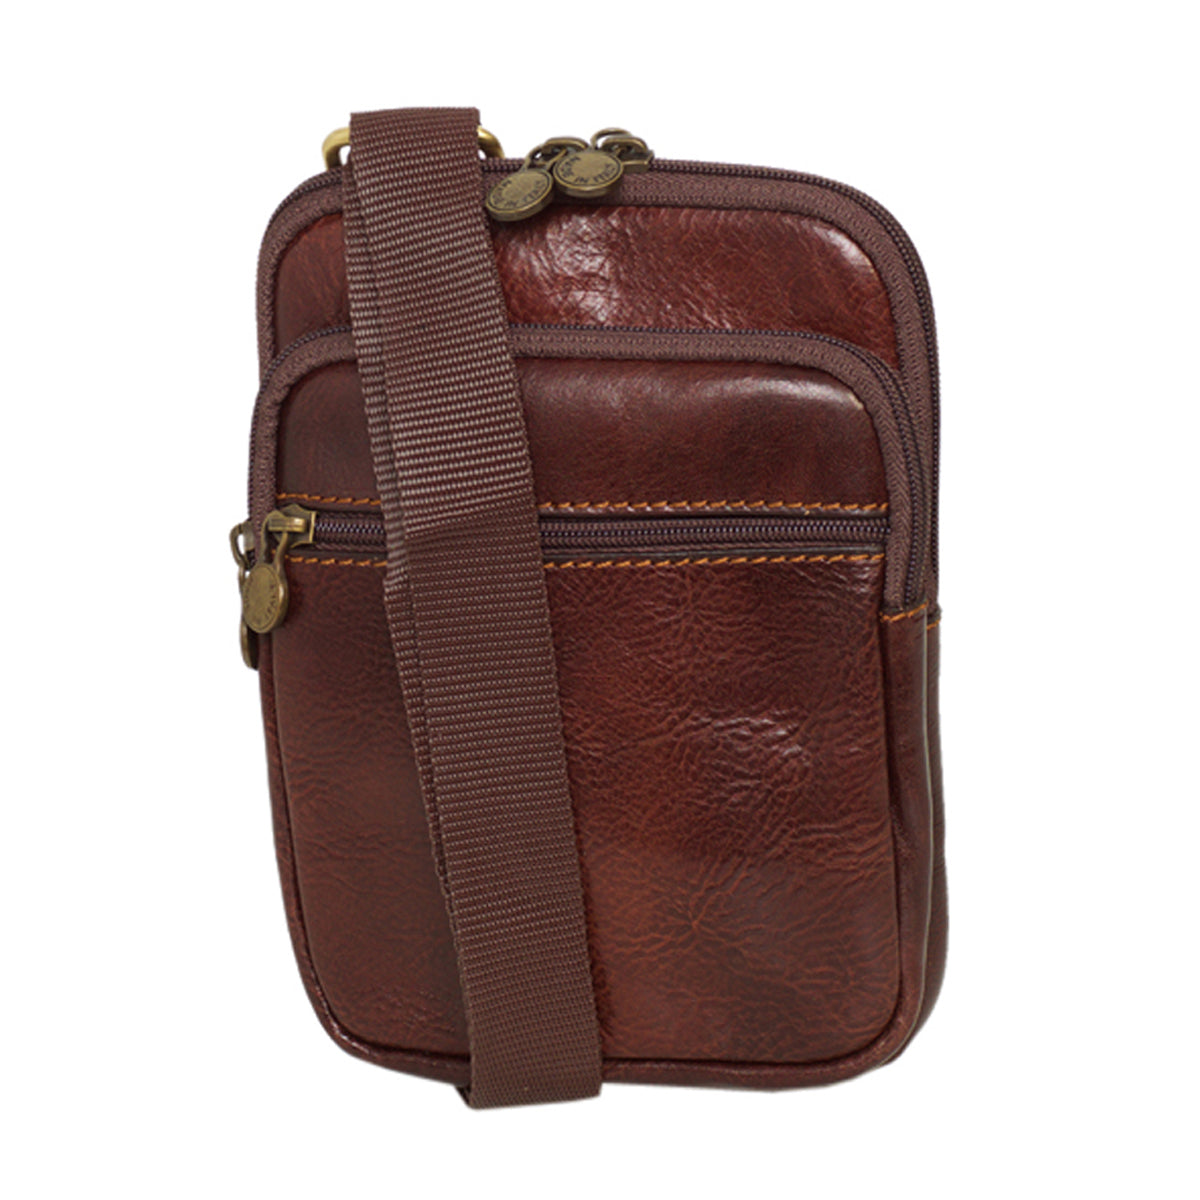 728e57751a  Best Authentic Italian Leather Products Online  - Leathershop